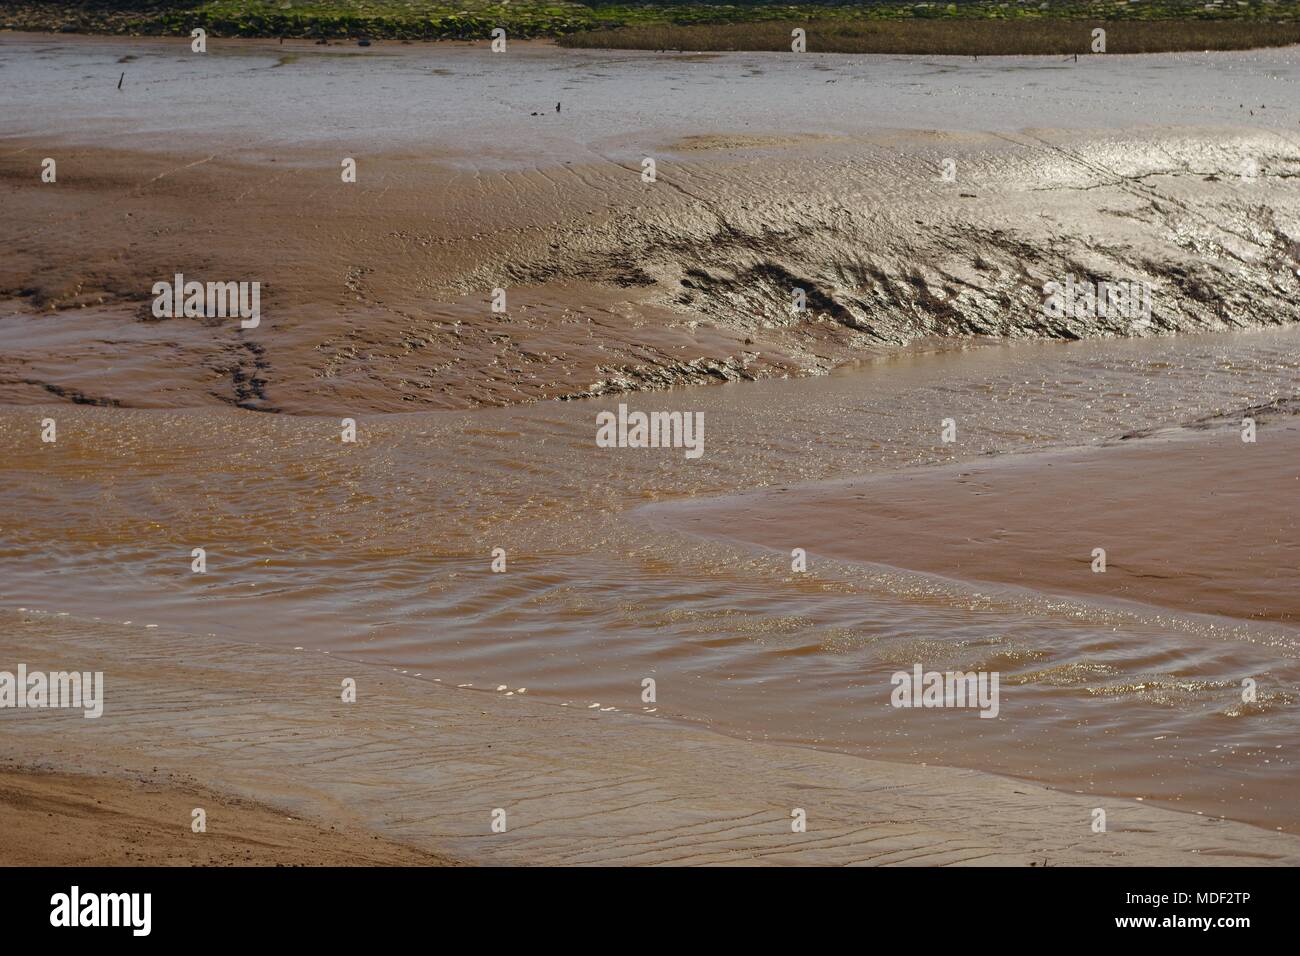 Confluence of Two River Channels Incising into Estuarine mud at Low Tide. Exe Estuary, Turf Lock, Exeter, Devon, UK. - Stock Image